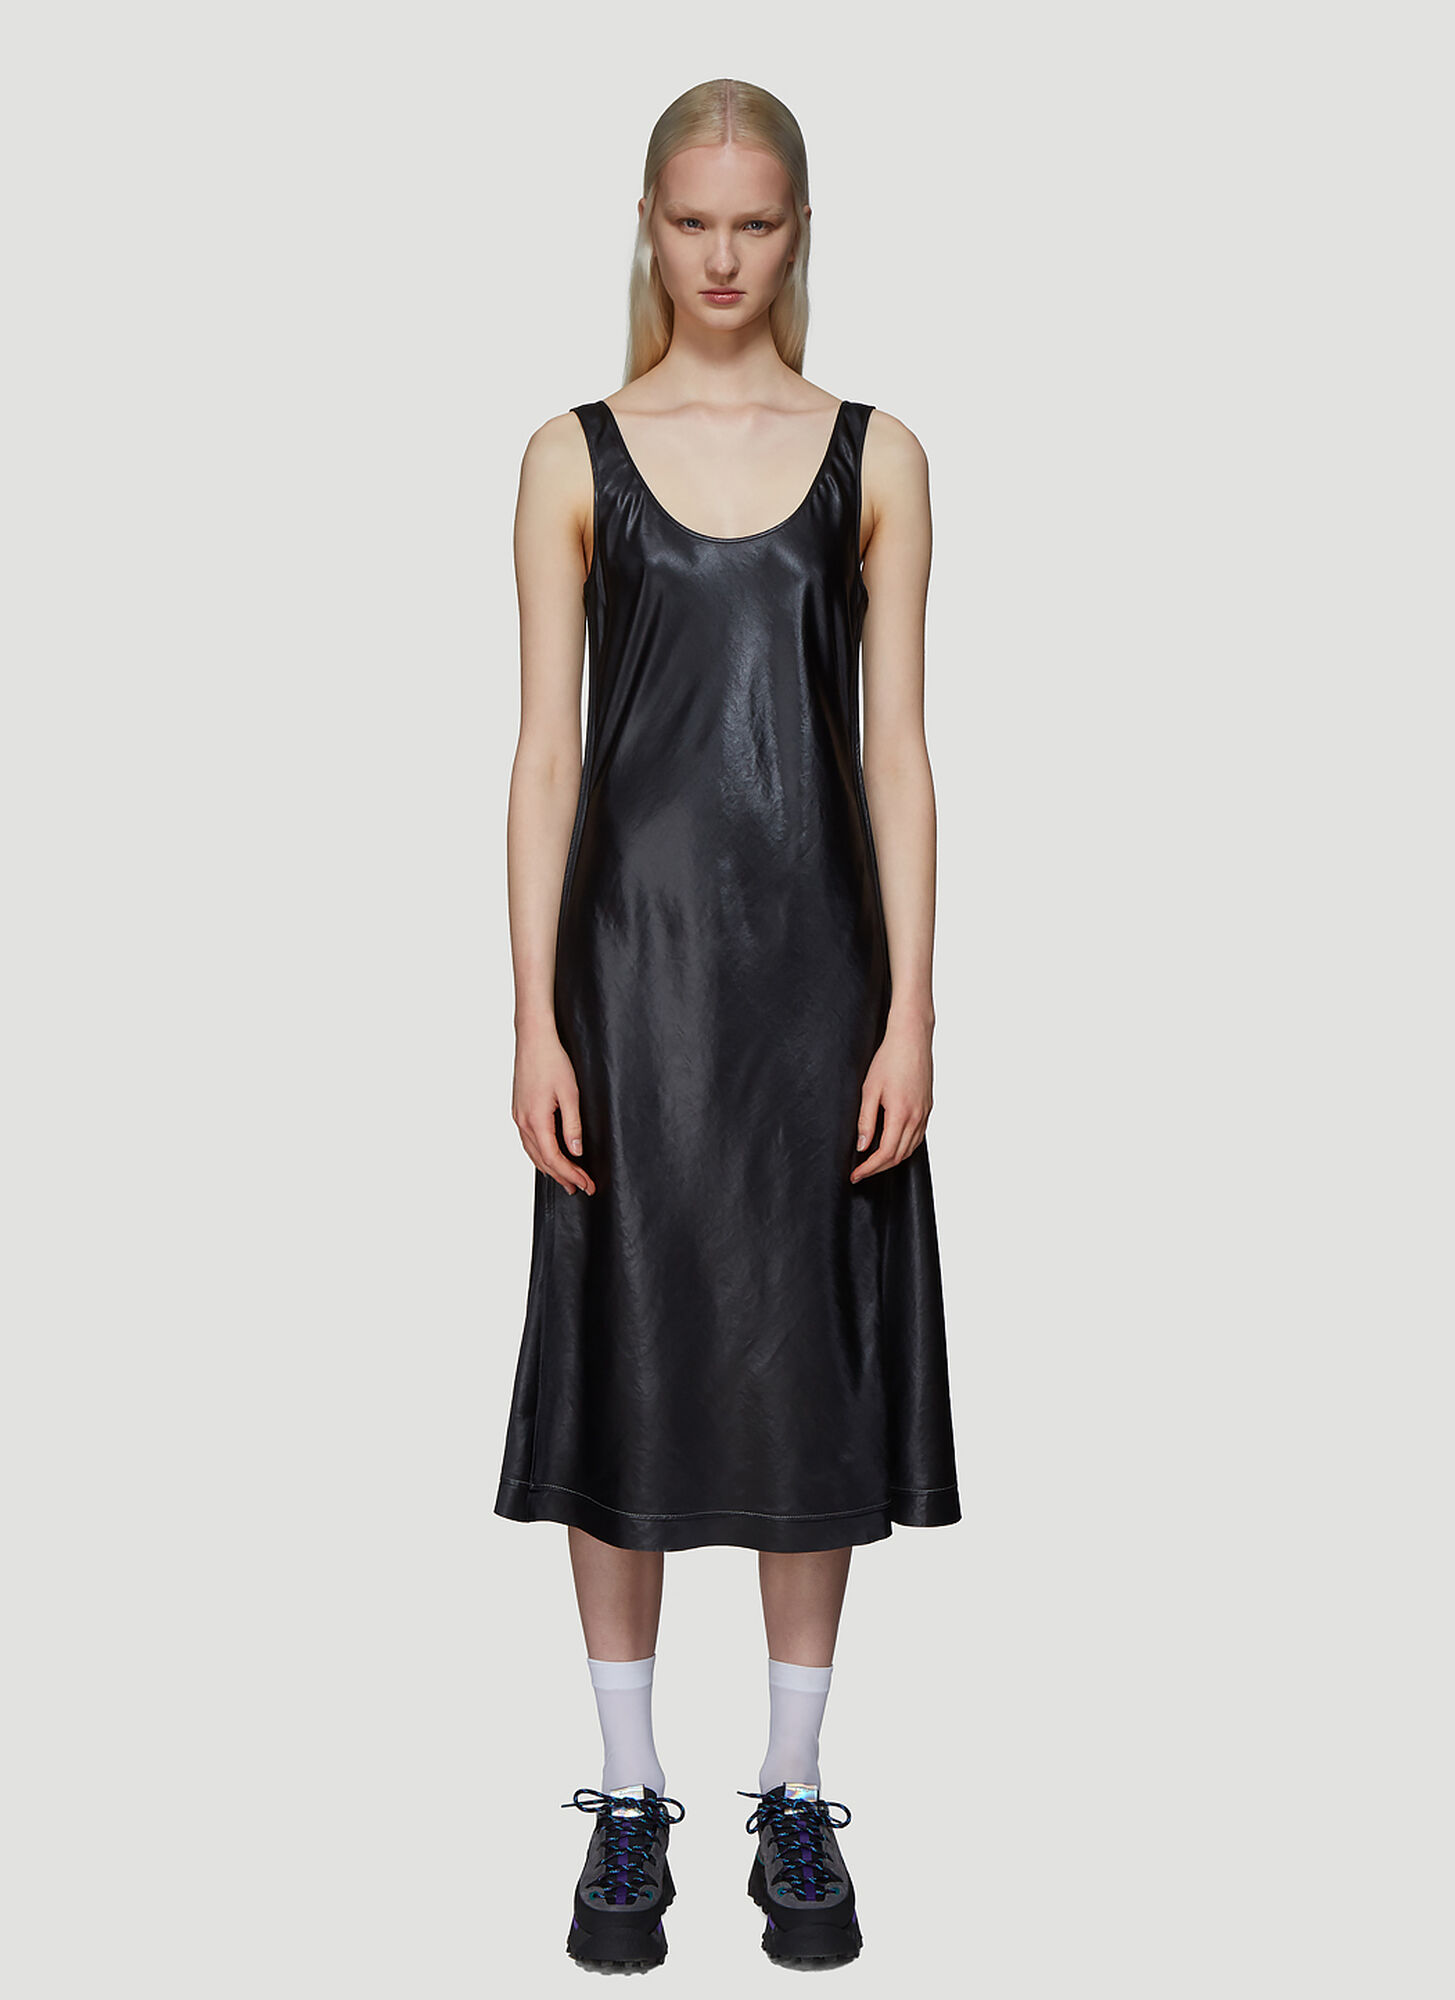 Acne Studios Satin Midi Dress in Black